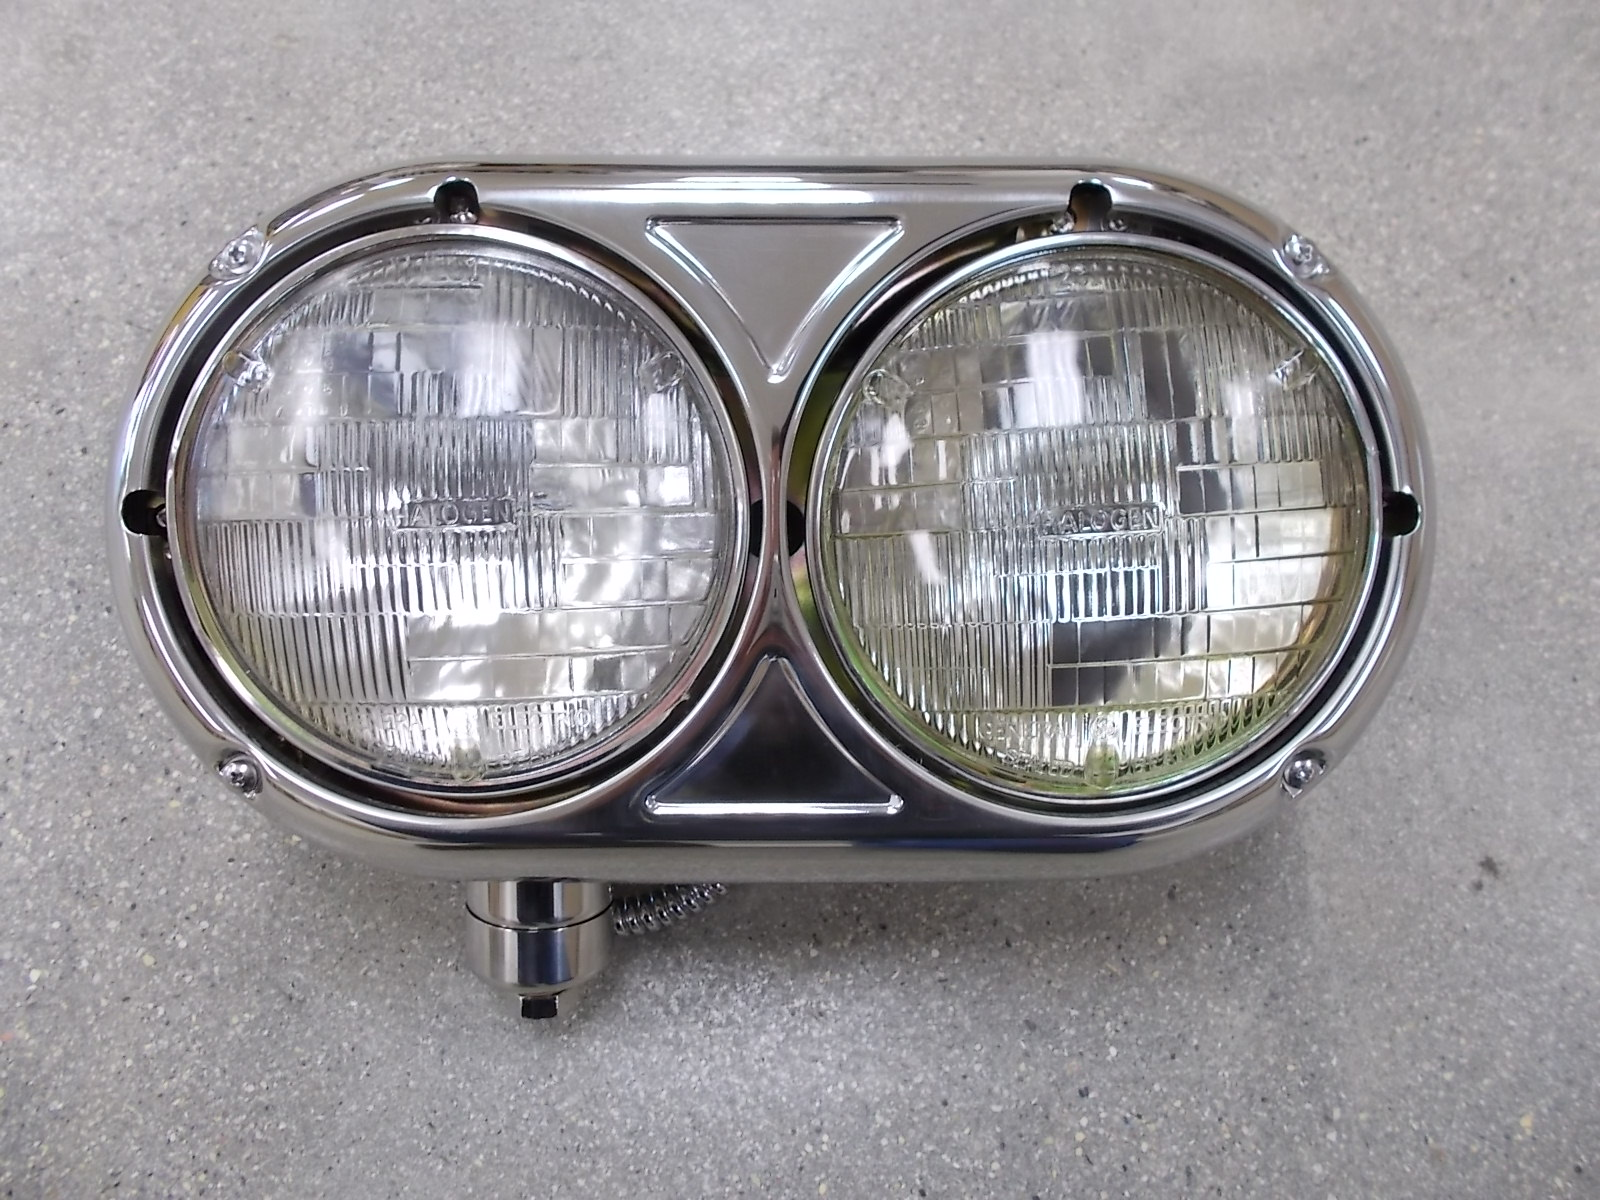 Peterbilt 359 Style Dual Headlight With Vintage Halogen Bulb, Driver Side